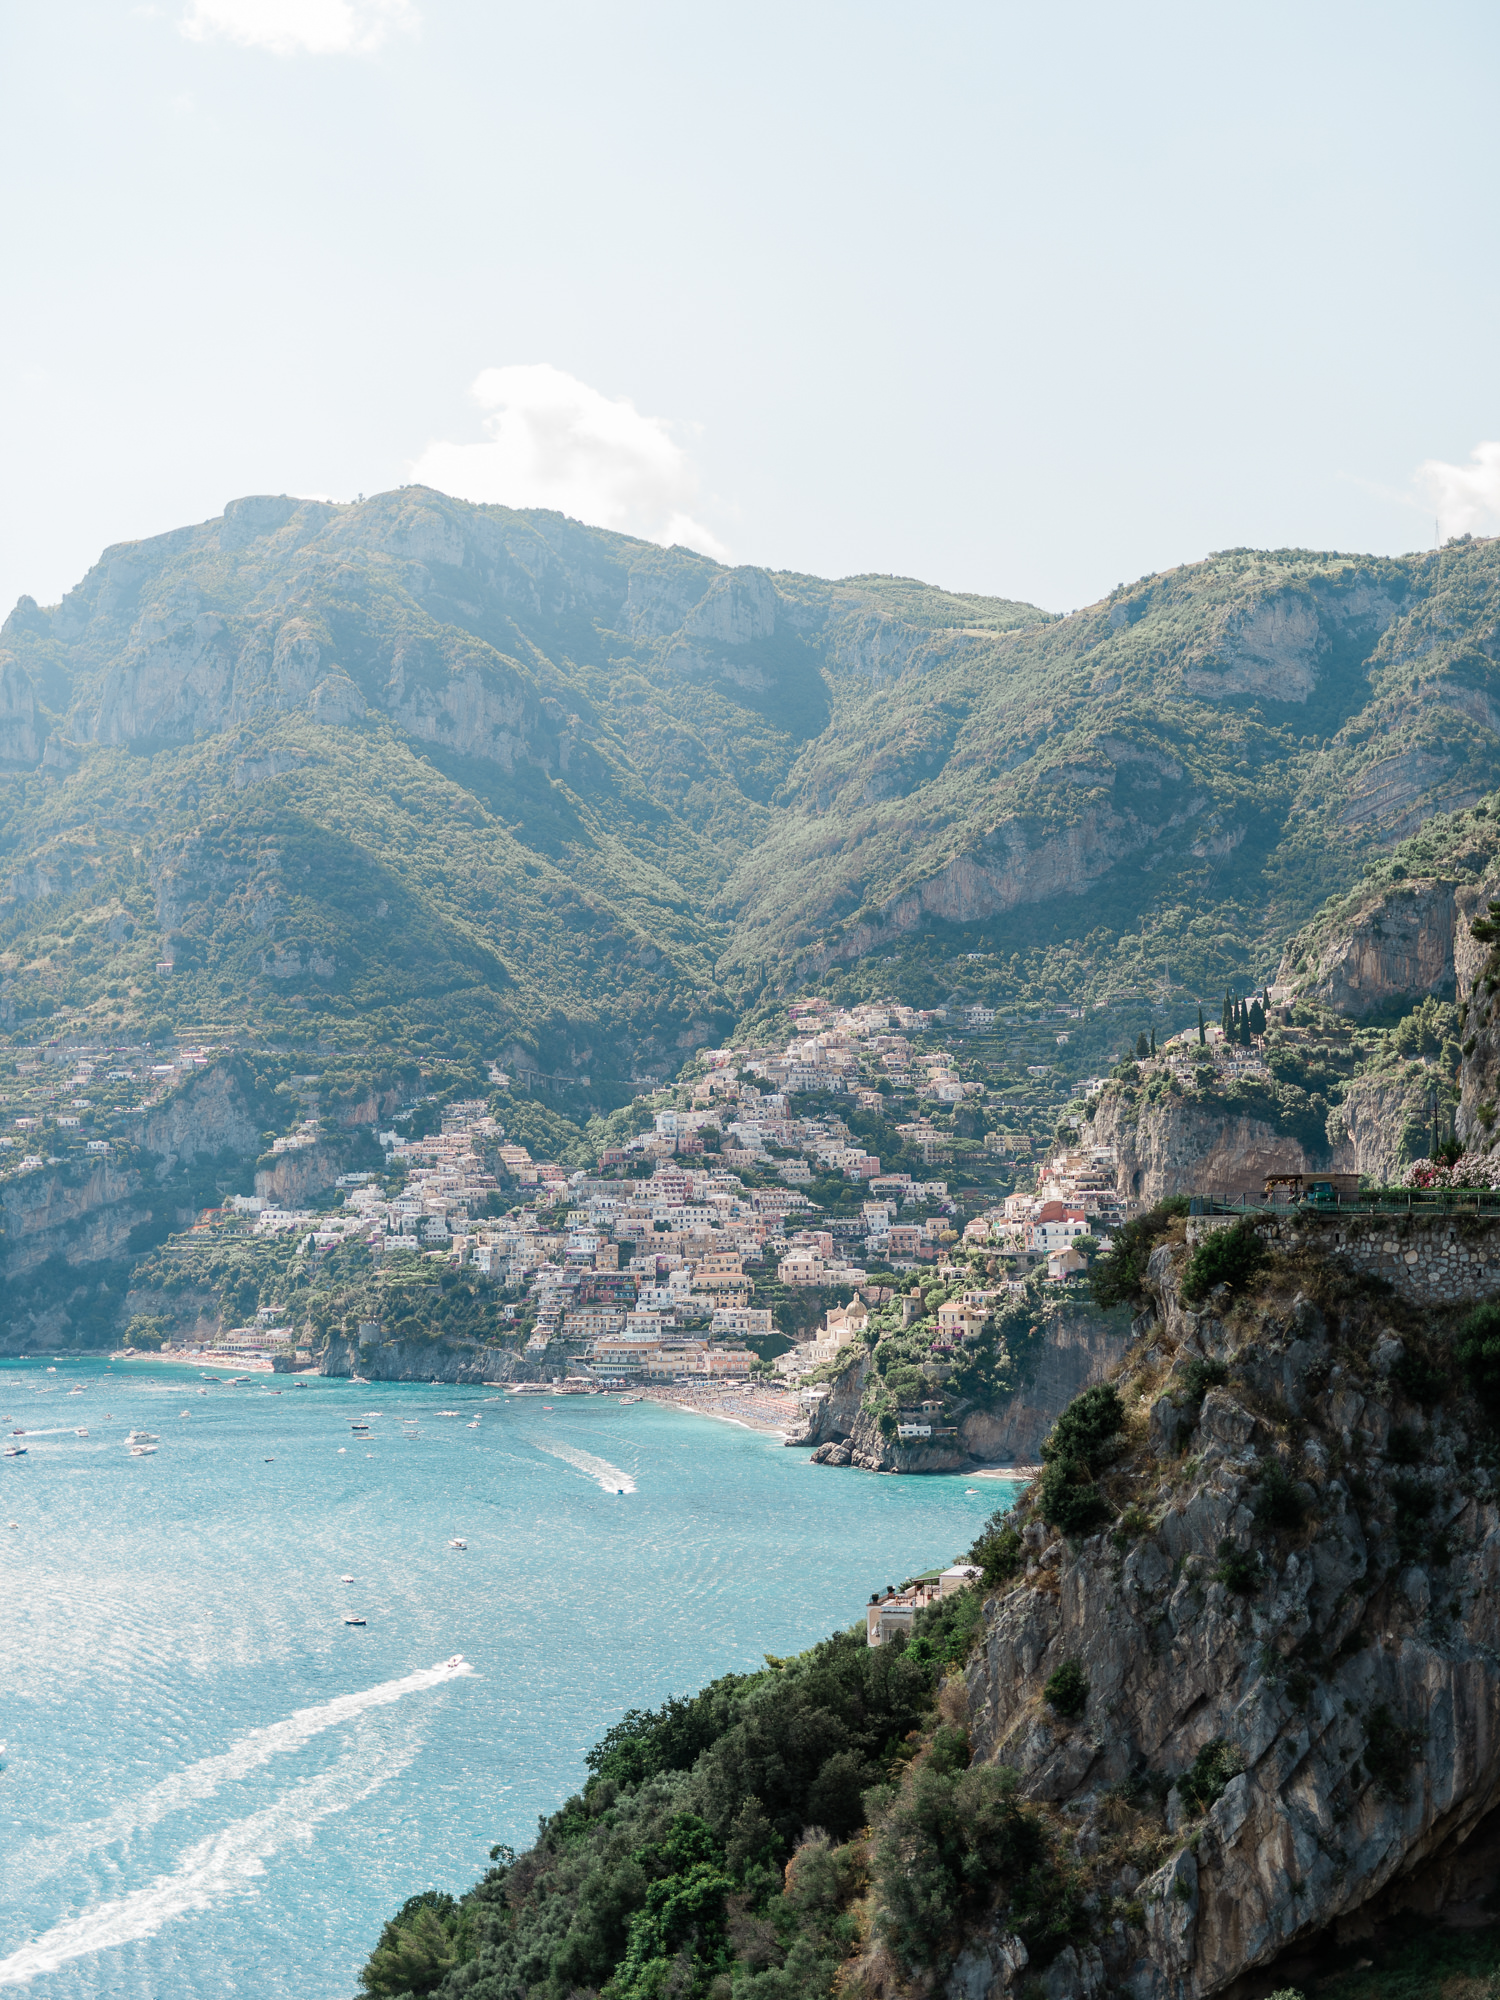 View from Villa San Giacomo in Positiano, Italy - photo by Gianluca Adovasio Photography